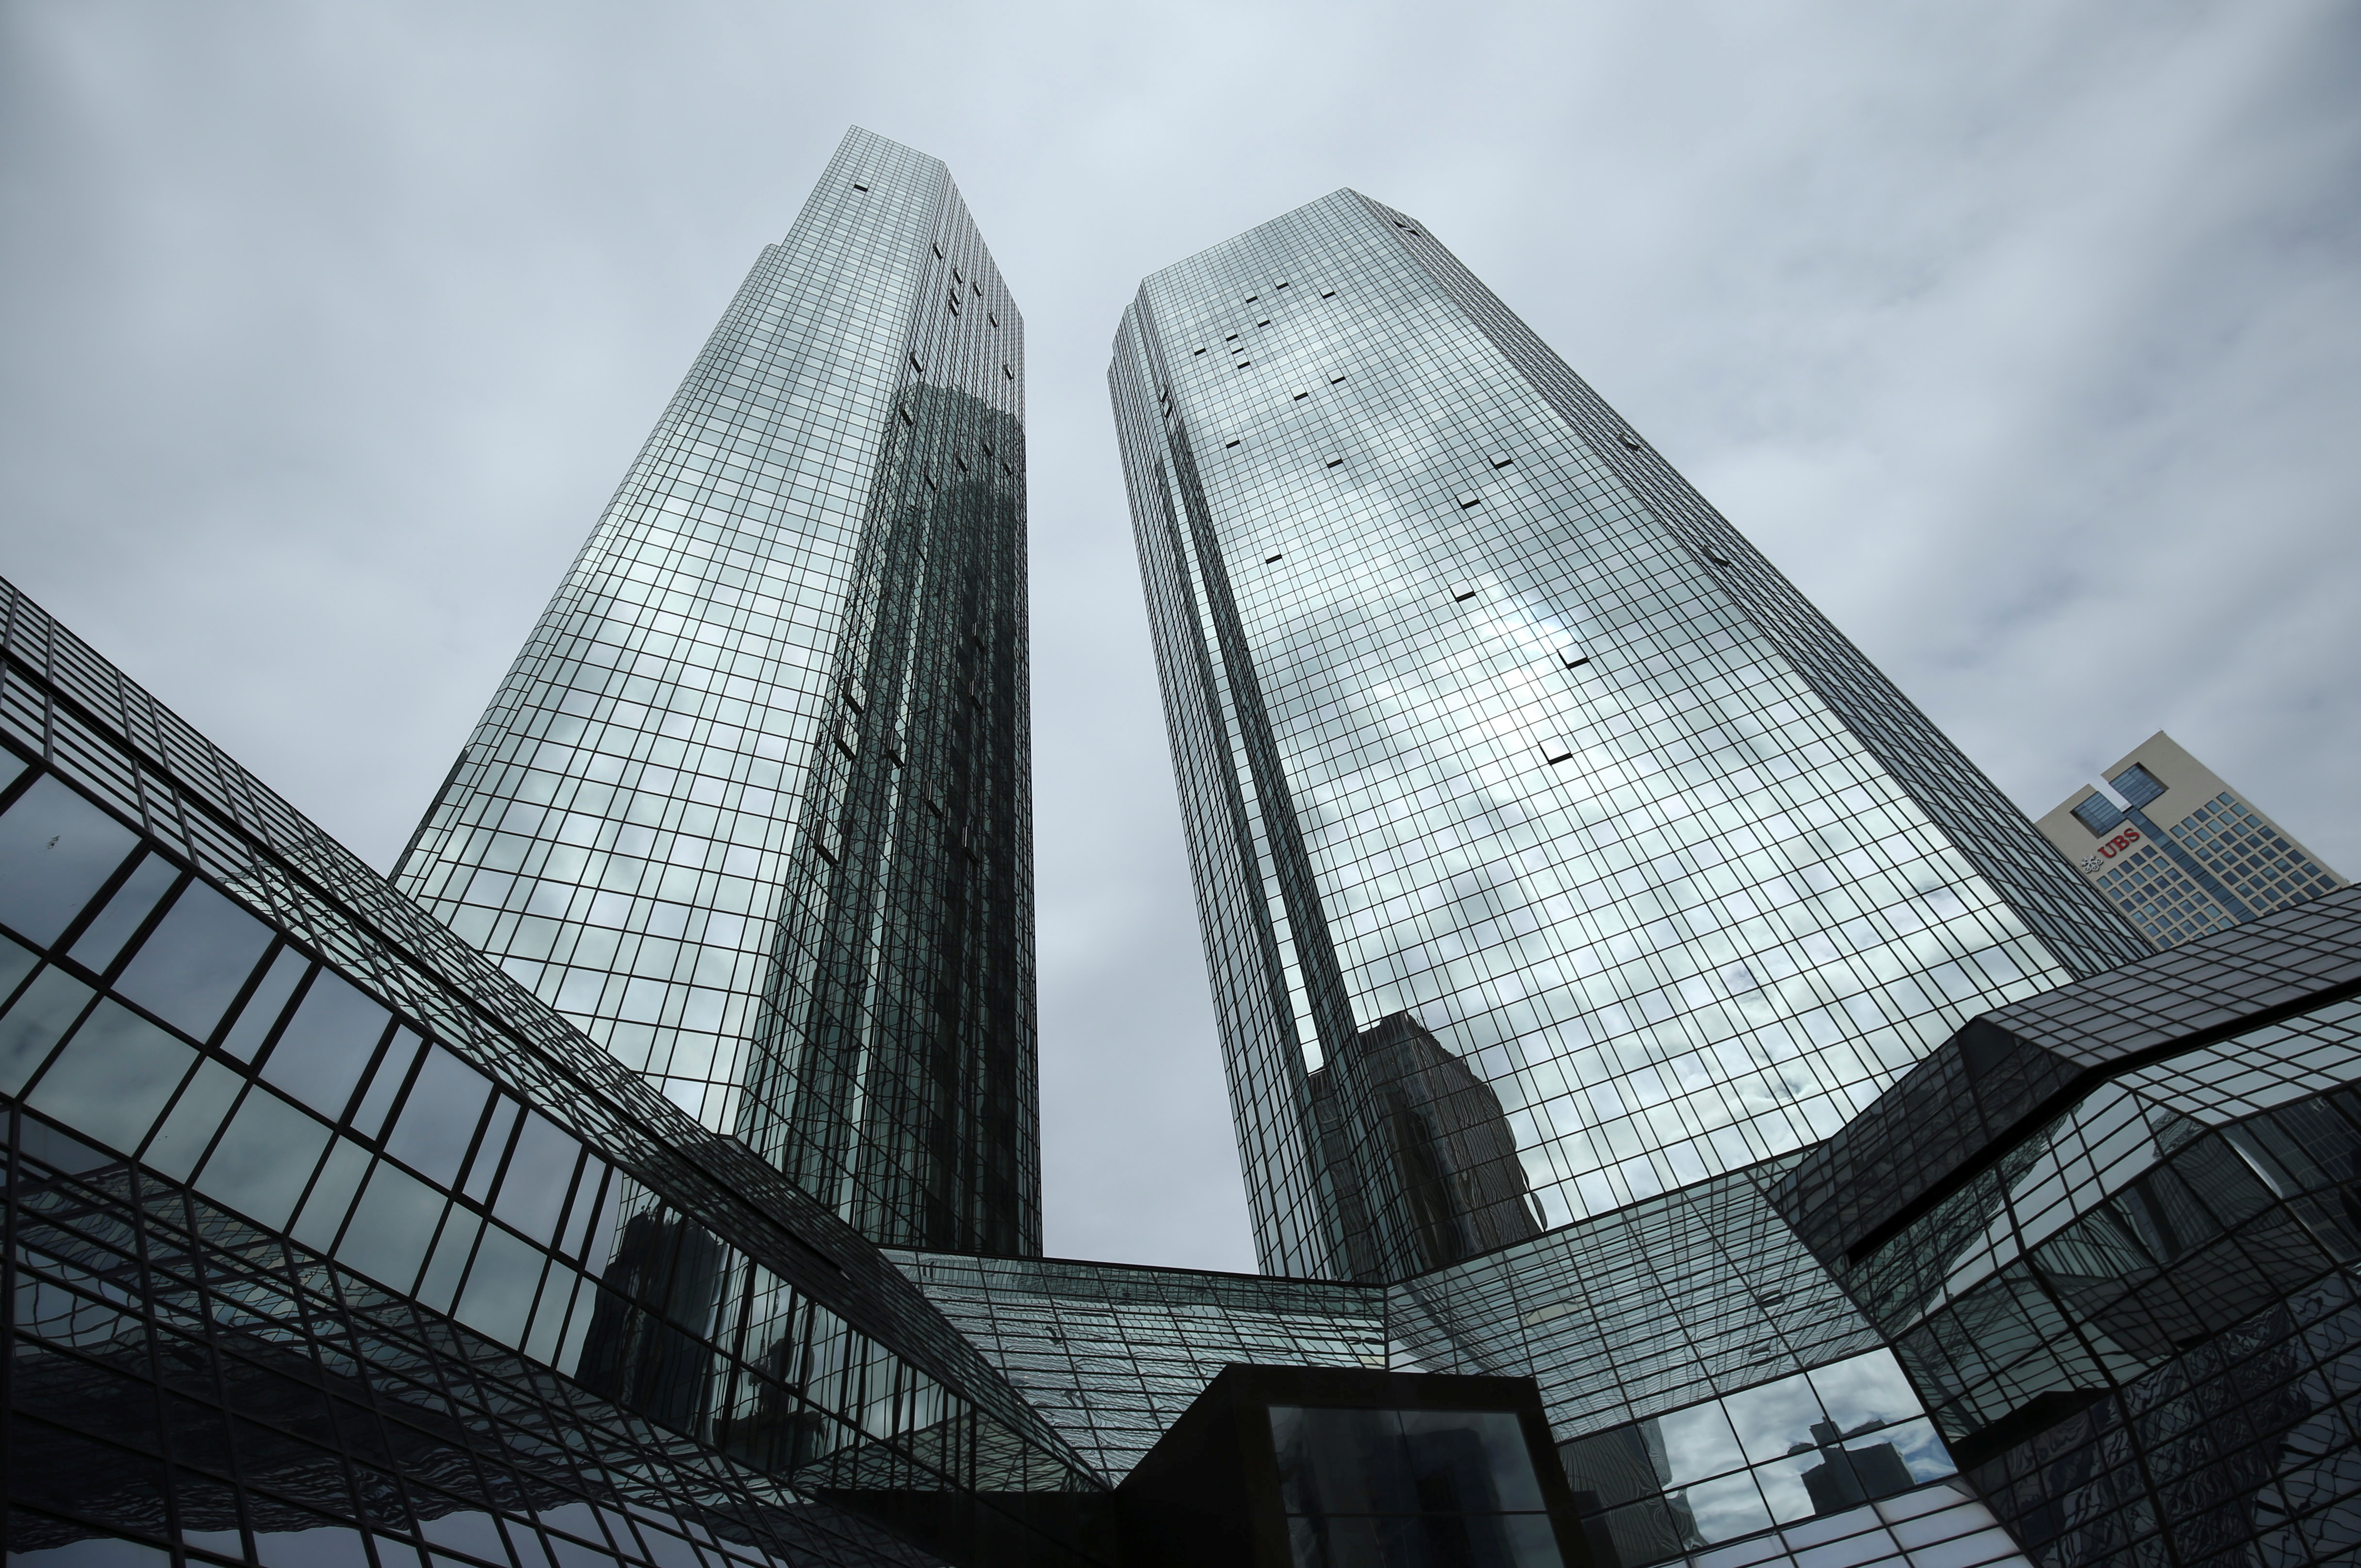 The Deutsche Bank headquarters are pictured in Frankfurt, Germany, April 25, 2019. REUTERS/Ralph Orlowski